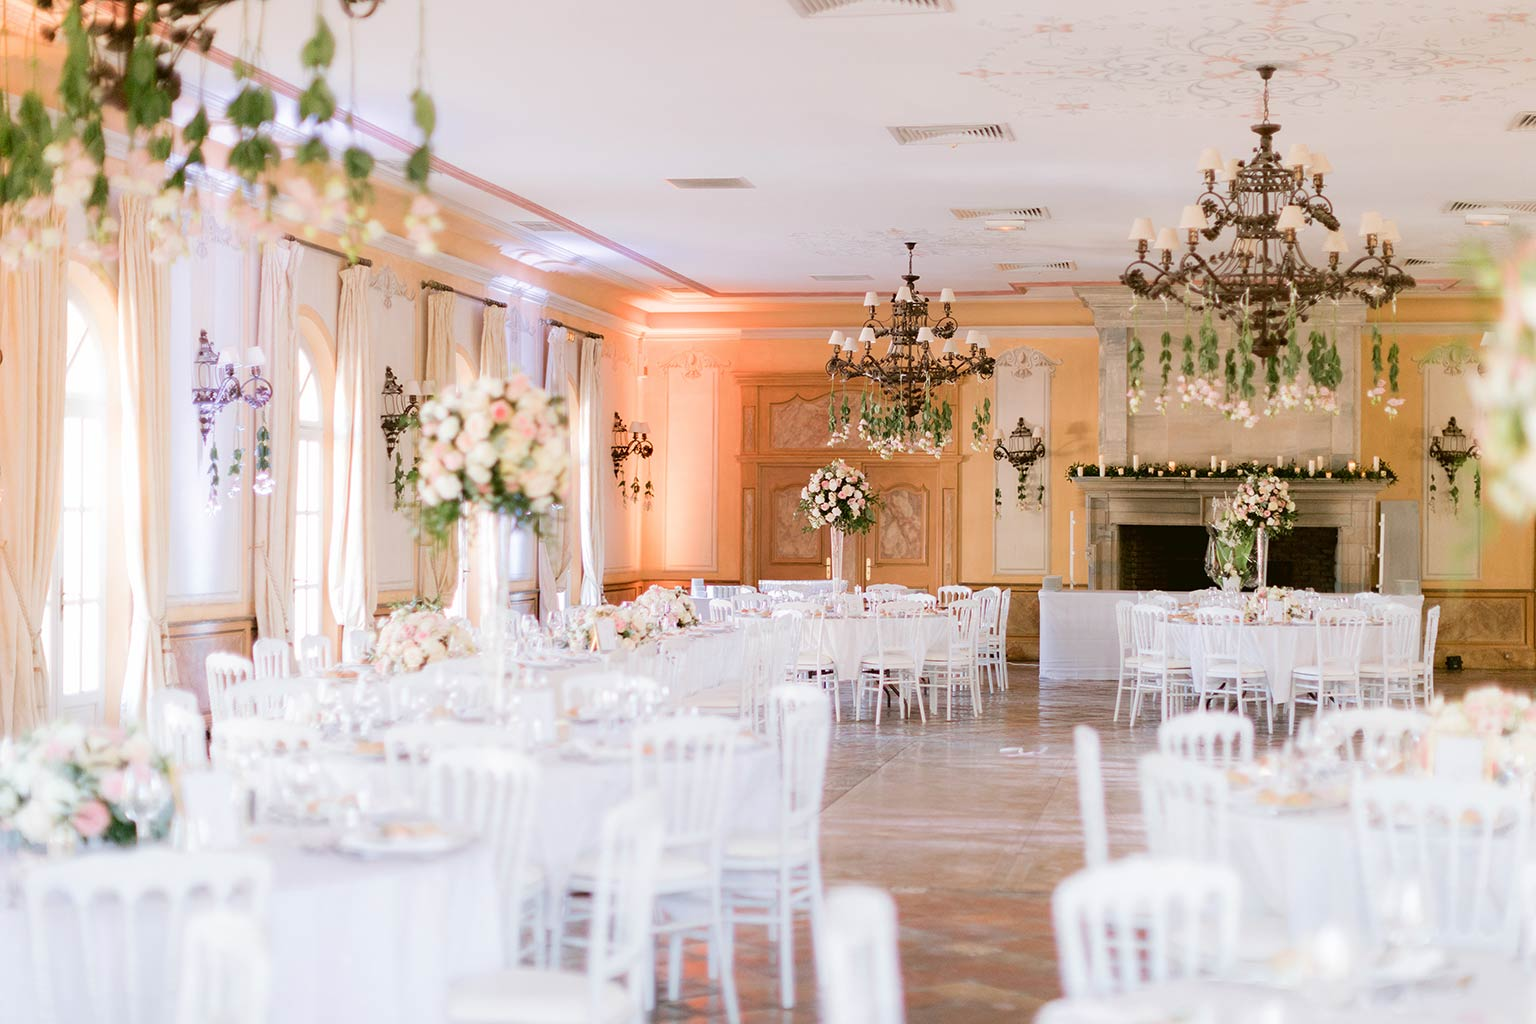 Romantic and flowery decoration - Destination wedding between the French Riviera and Provence